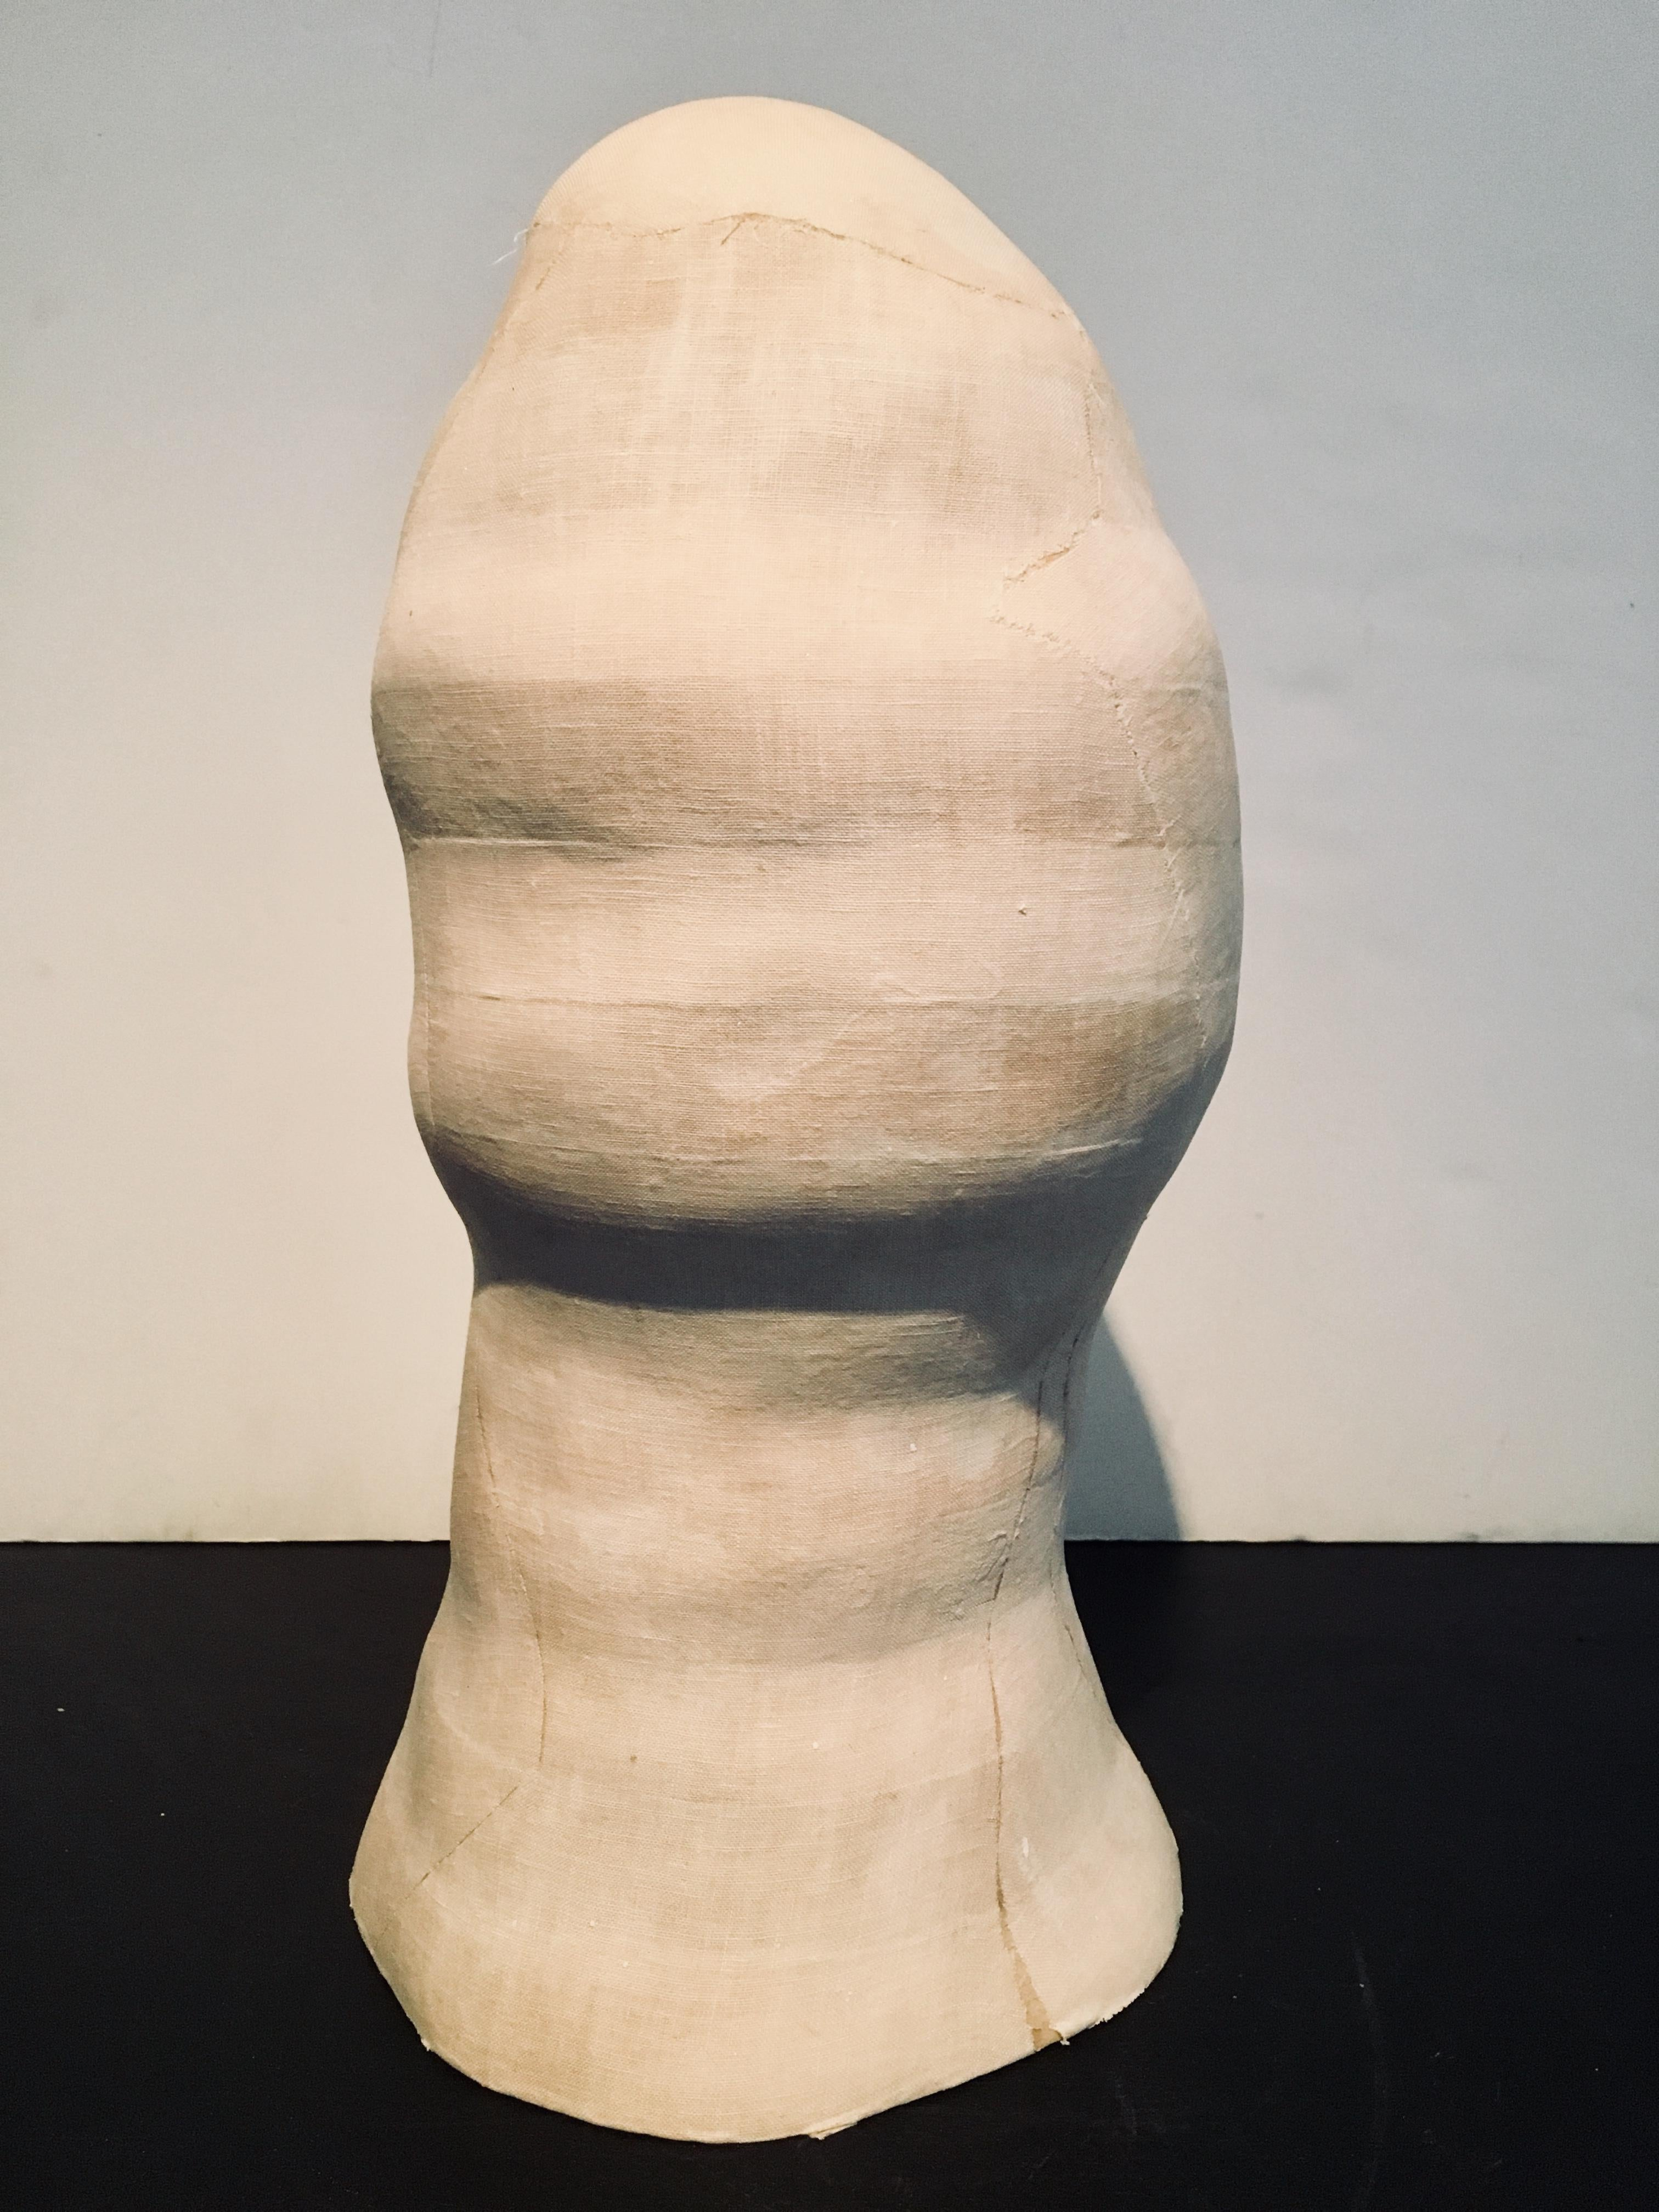 Abstract Head Sculpture: 'Untitled'